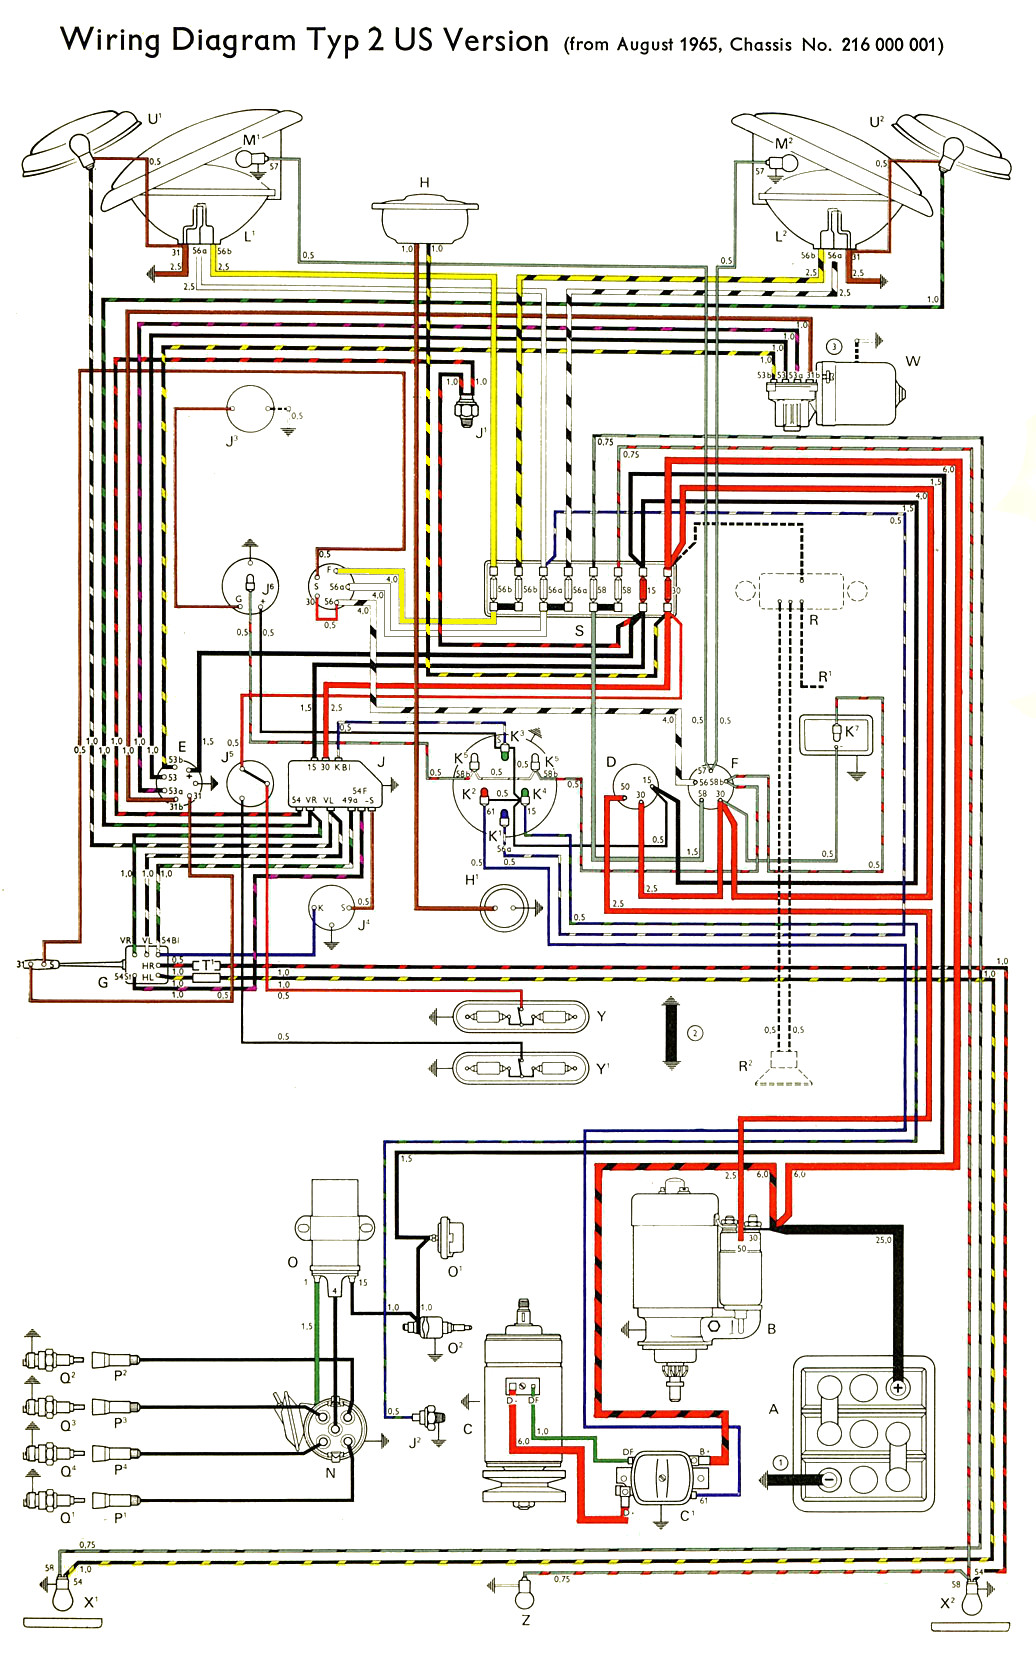 Vw Vanagon Turn Signal Wiring Diagram 1970 vw beetle turn ... on vw distributor diagram, 68 vw wiring diagram, alfa romeo spider wiring diagram, vw starter wiring diagram, fiat uno wiring diagram, vw buggy wiring-diagram, volkswagen fuel diagram, 1967 vw wiring diagram, 1974 vw engine diagram, vw turn signal wiring diagram, vw light switch wiring, type 3 wiring diagram, 1973 vw wiring diagram, vw beetle engine diagram, vw beetle fuel injection diagram, 1963 vw wiring diagram, vw rabbit wiring-diagram, porsche cayenne wiring diagram, vw type 2 wiring diagram, 1999 vw passat wiring diagram,